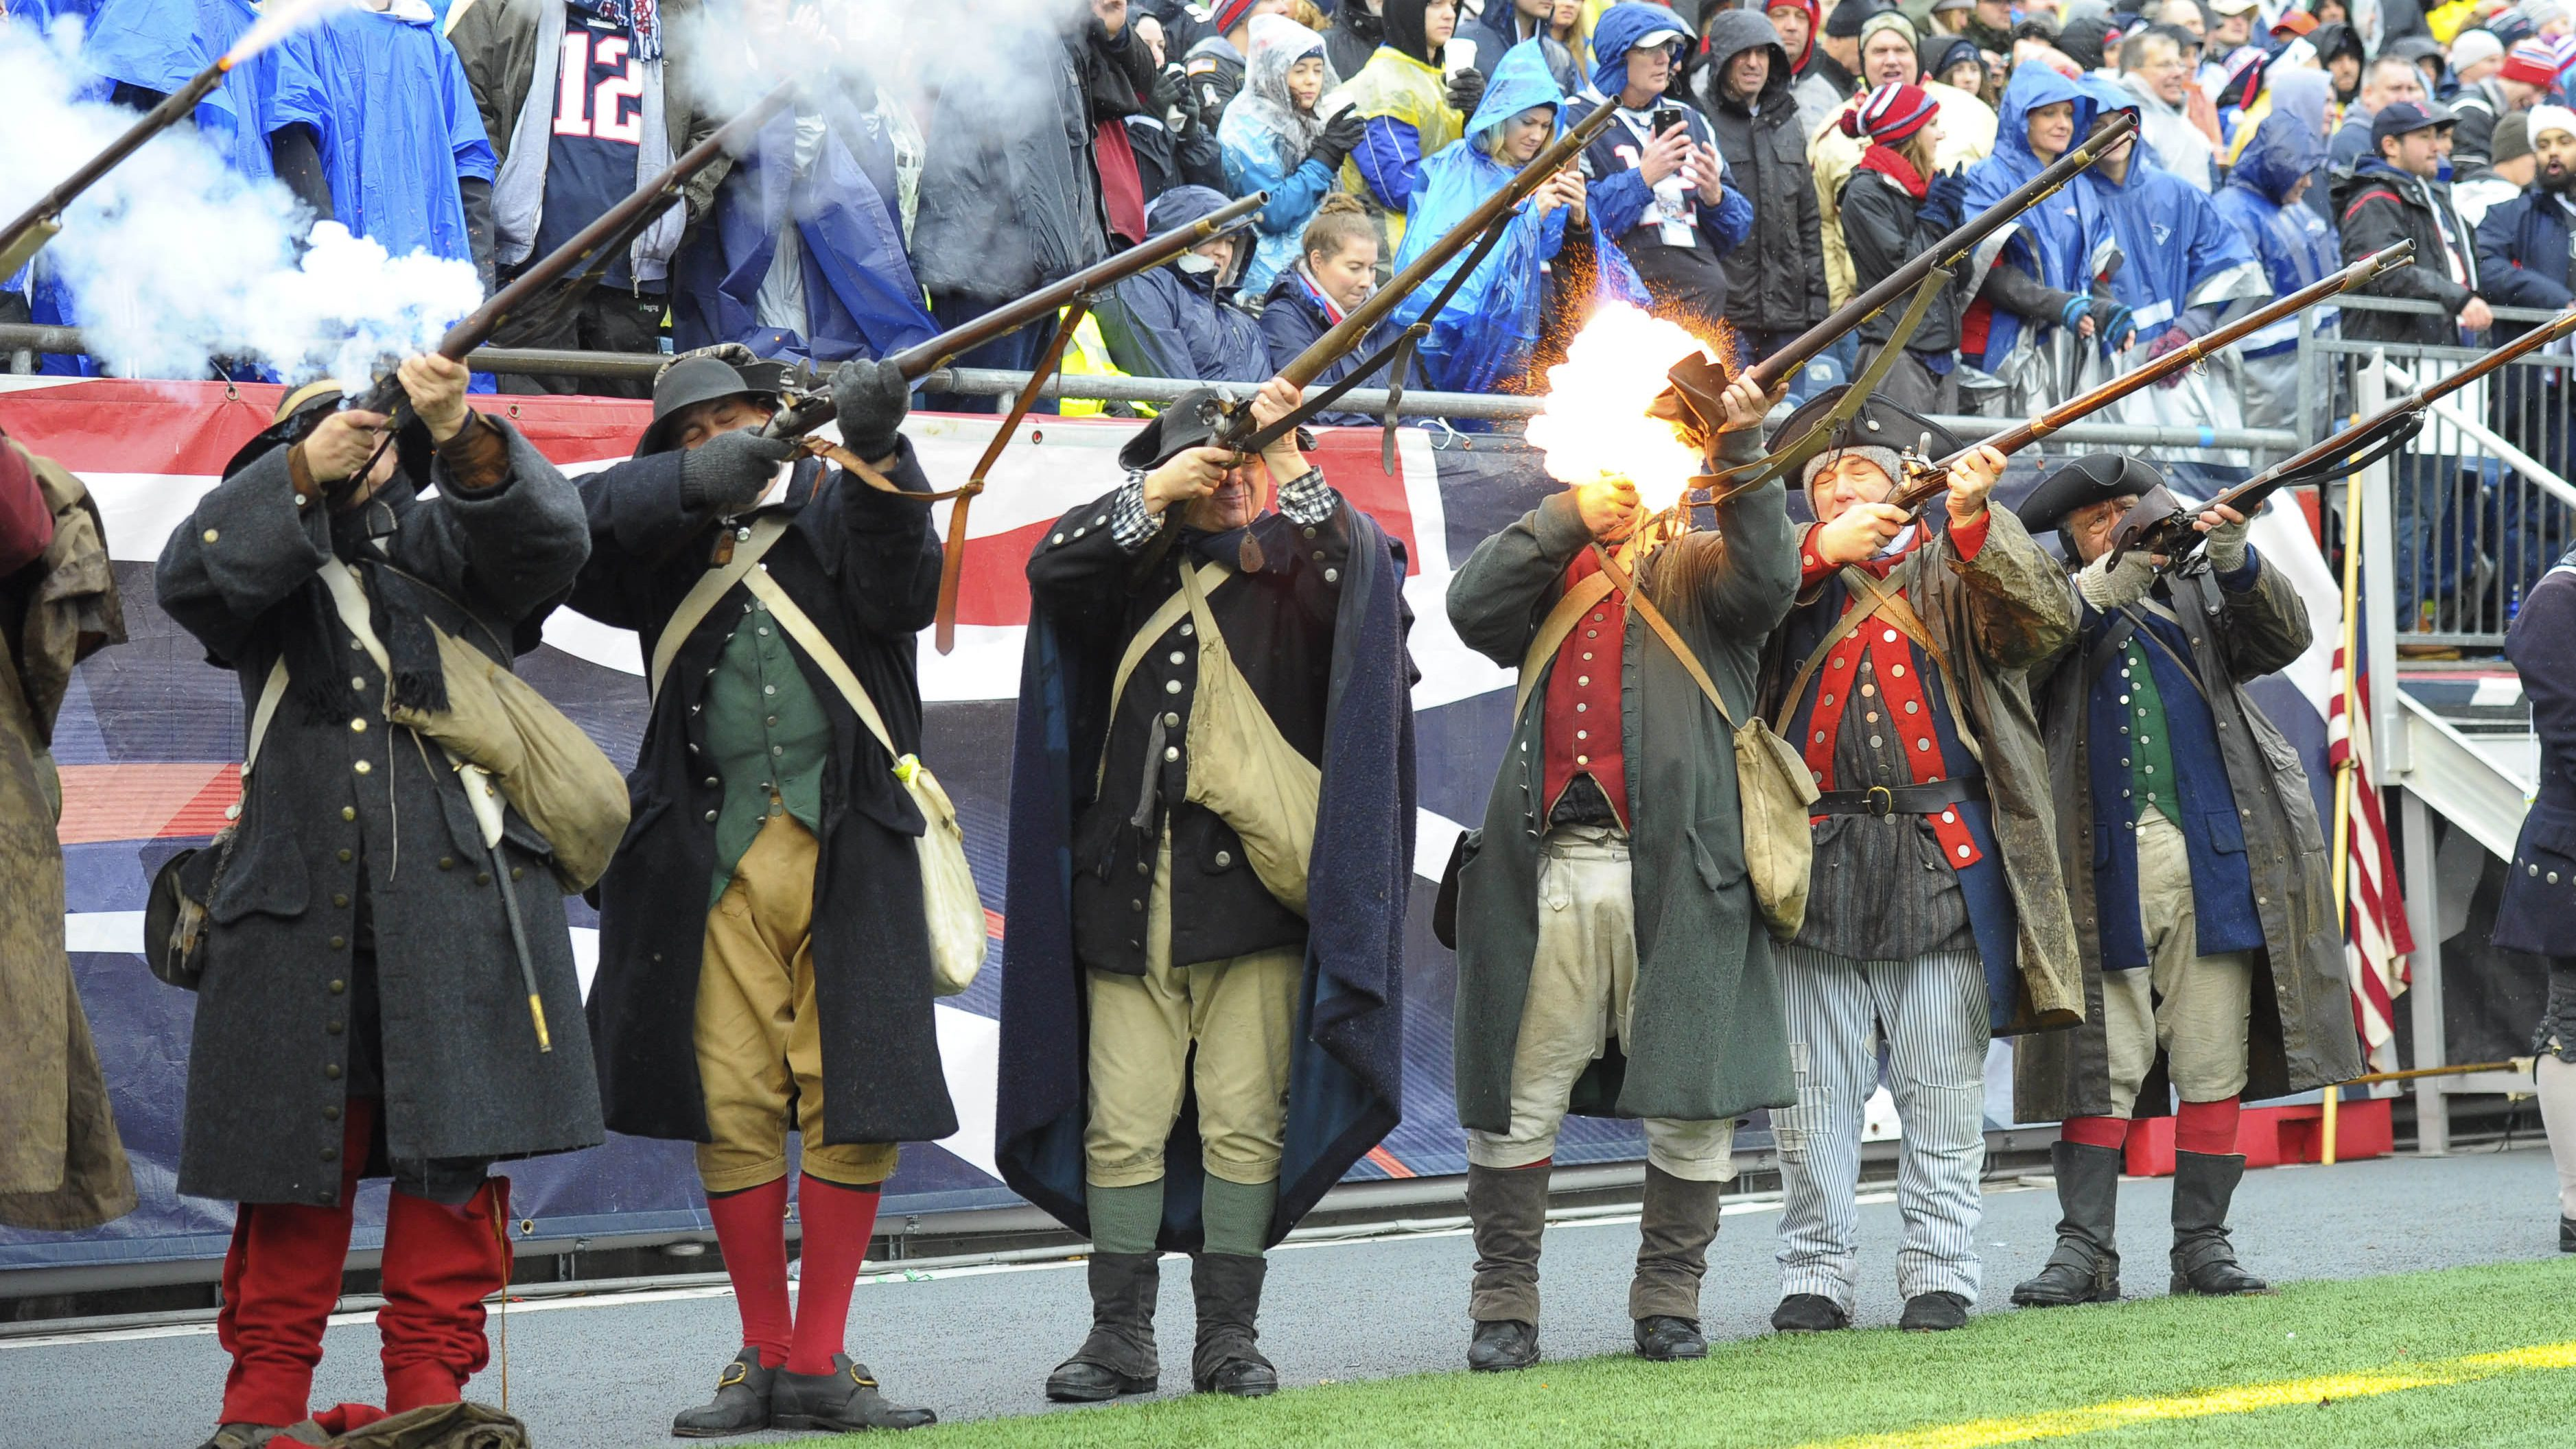 Dec 24, 2016; Foxborough, MA, USA;  The end zone militia fire the muskets after a New England Patriots touchdown during the first half against the New York Jets at Gillette Stadium. Mandatory Credit: Bob DeChiara-USA TODAY Sports - 9766913